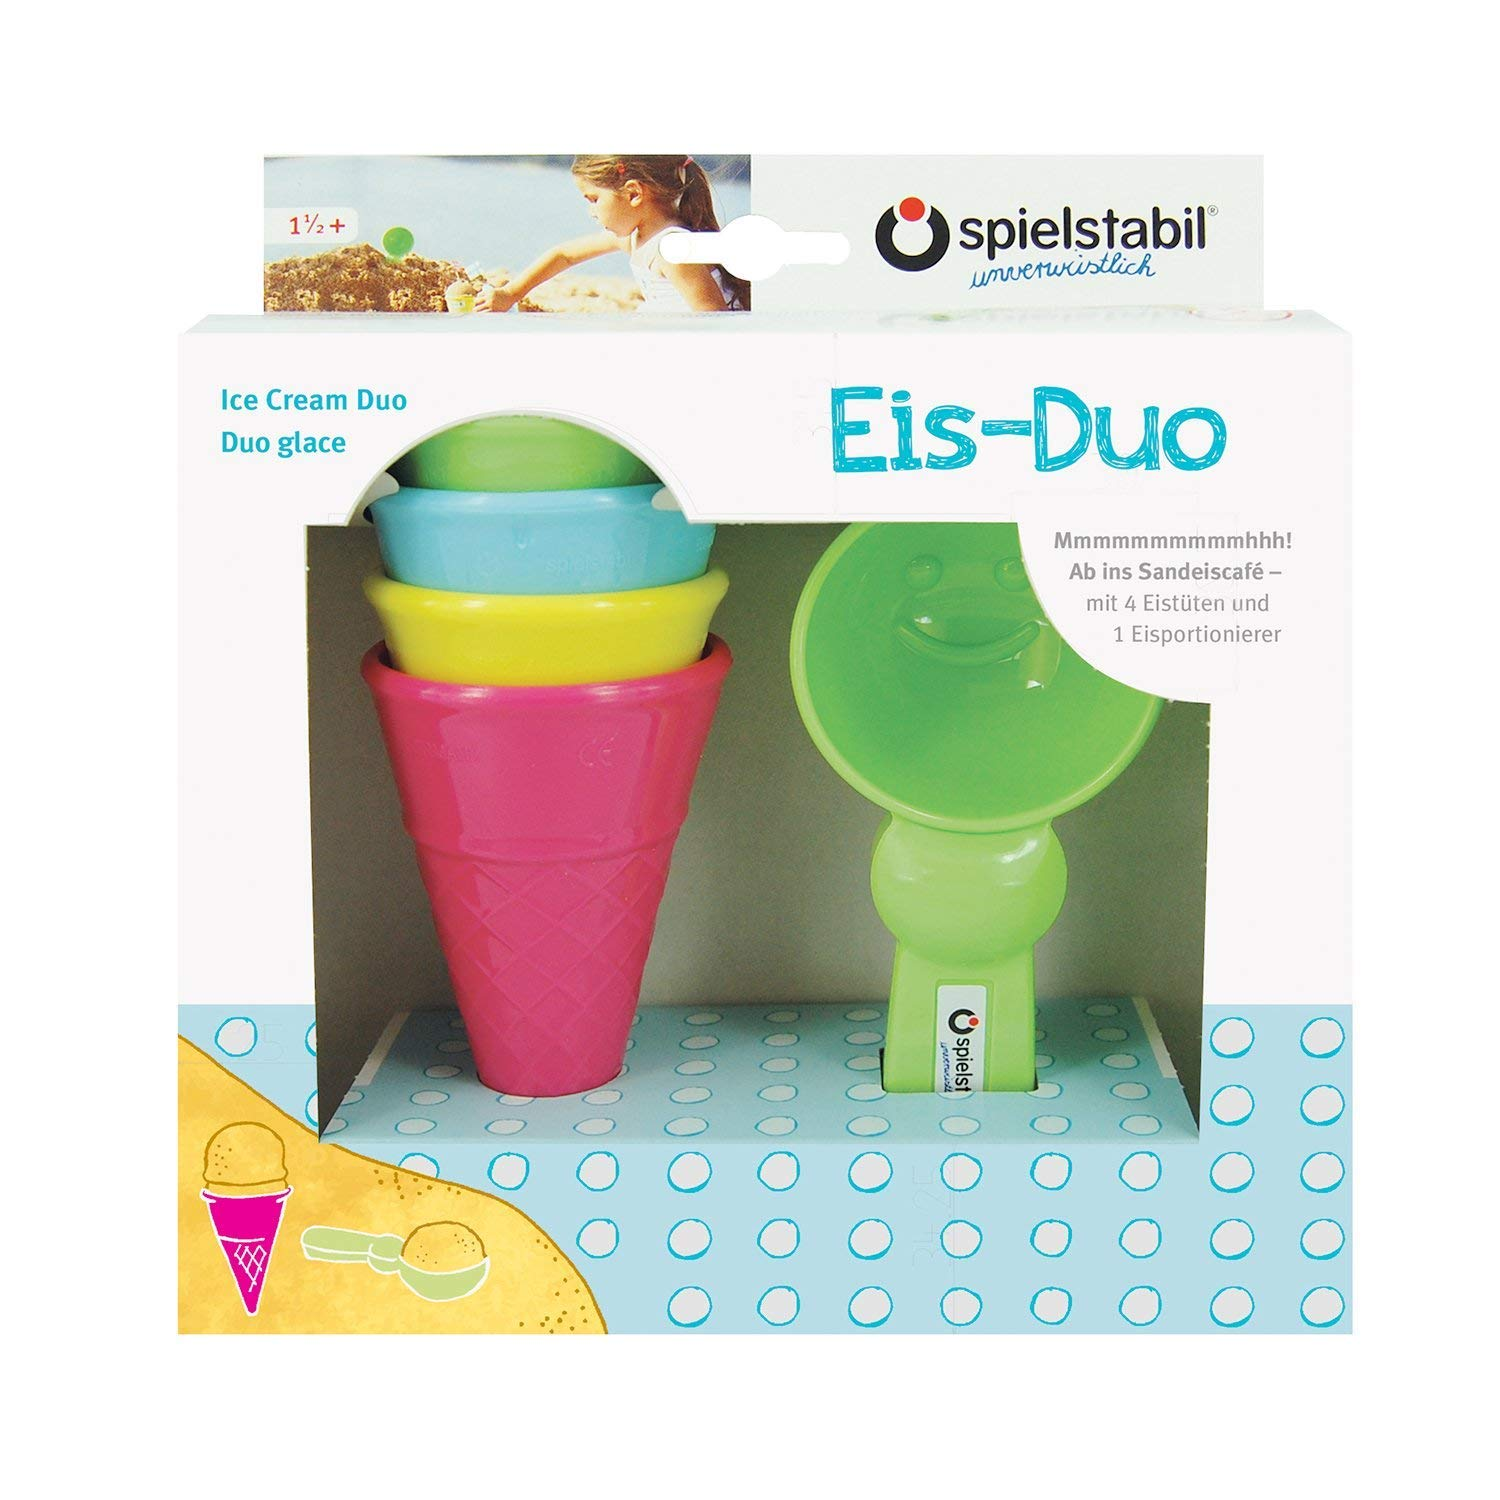 Spielstabil Ice Cream Duo Play Set with 4 Plastic Cones and 1 Scoop Mold for Use in The Sand or with Real Food (Made in Germany) by O SPIELSTABIL